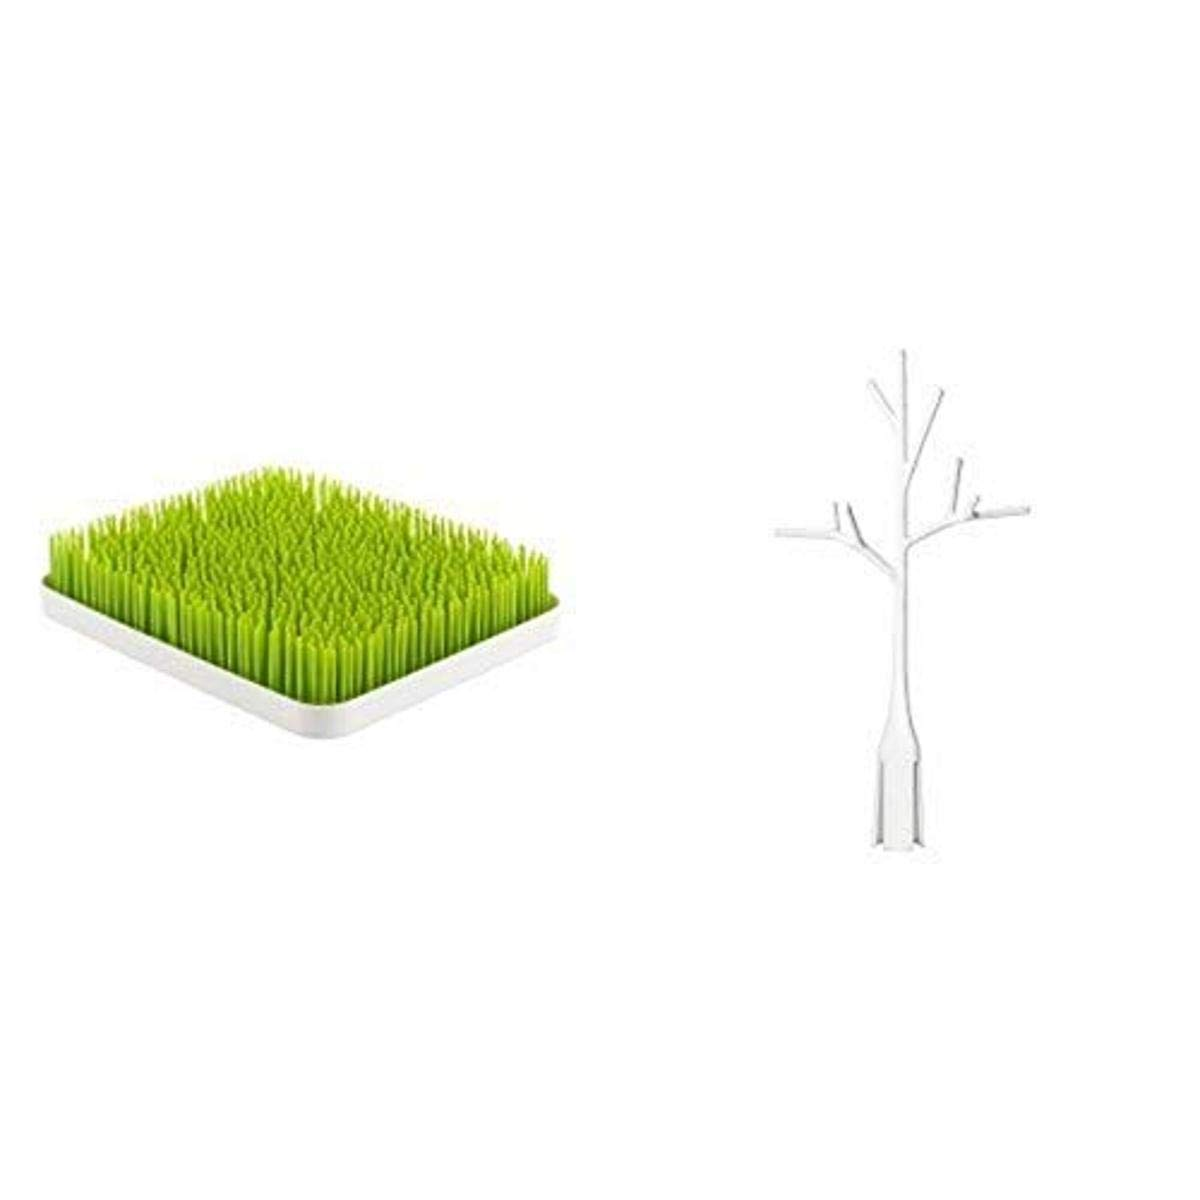 Boon Twig Grass and Lawn White Rack Drying Baltimore Mall 100% quality warranty! Accessory